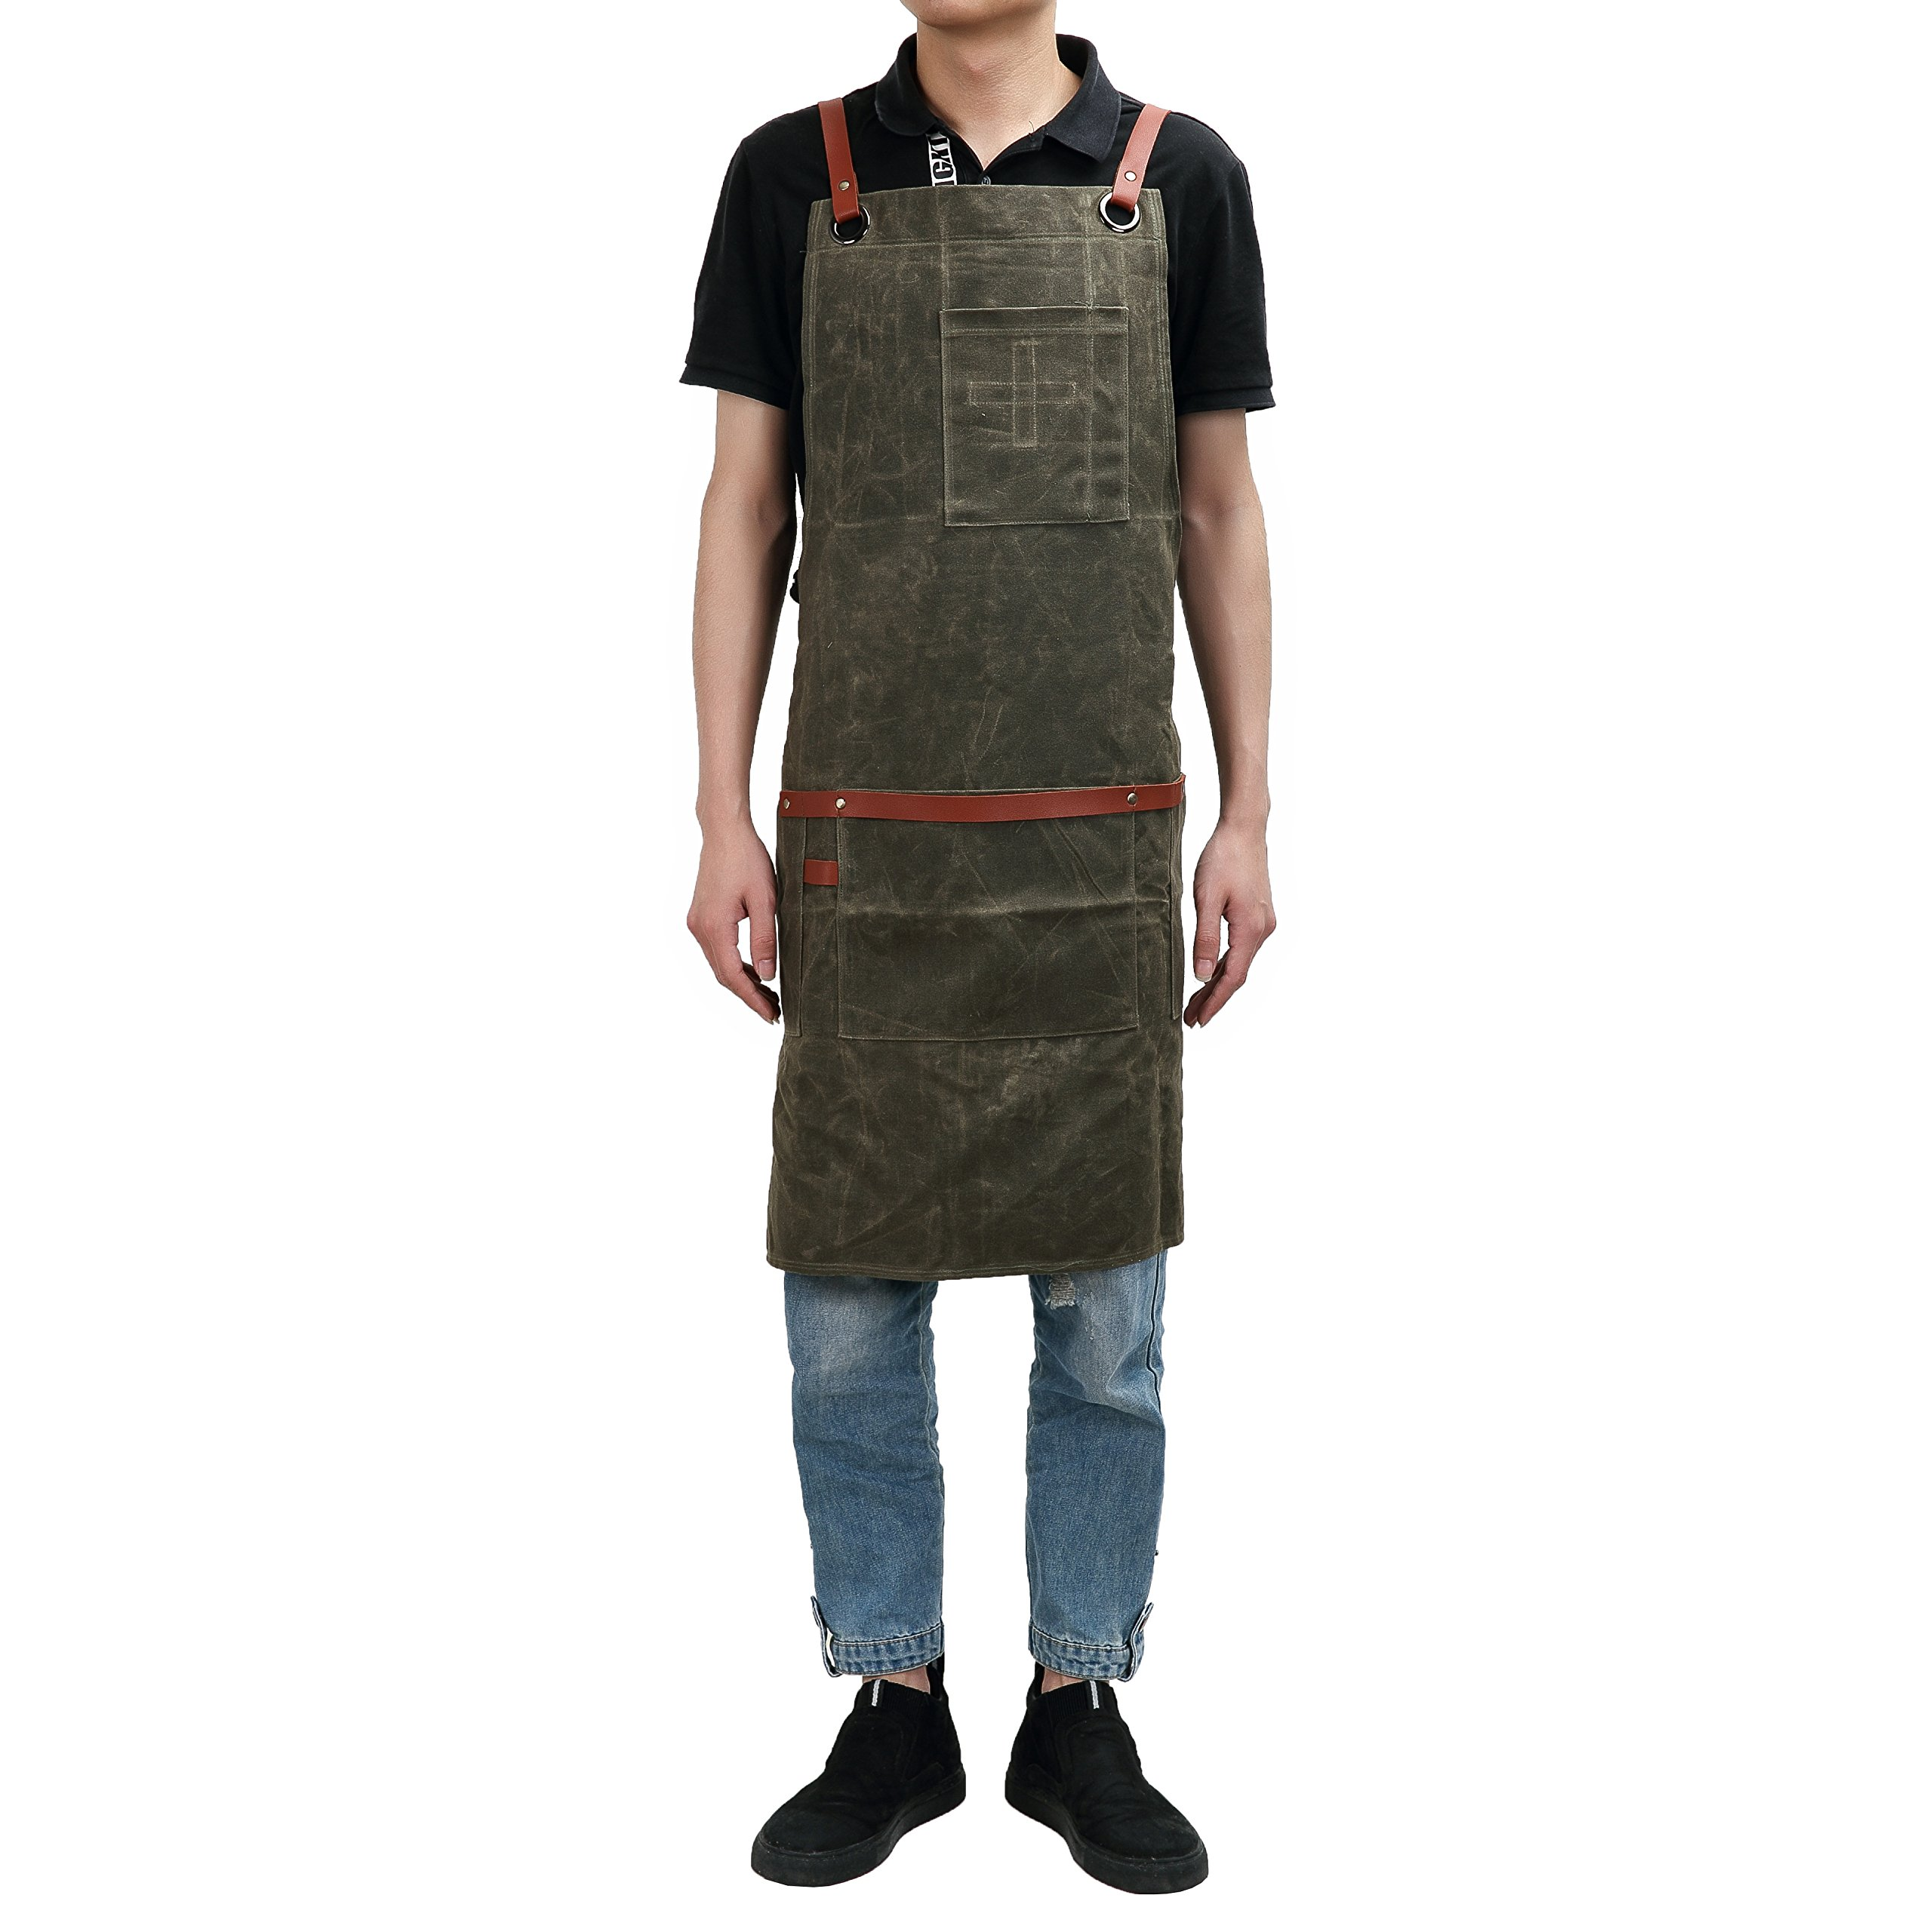 QEES Heavy Duty Waxed Canvas Workman Apron Large Pockets Utility Work Apron for Engineers Carpenter Handymen Fit Kitchen, Garden, Pottery, Craft Workshop, Garage WQ32